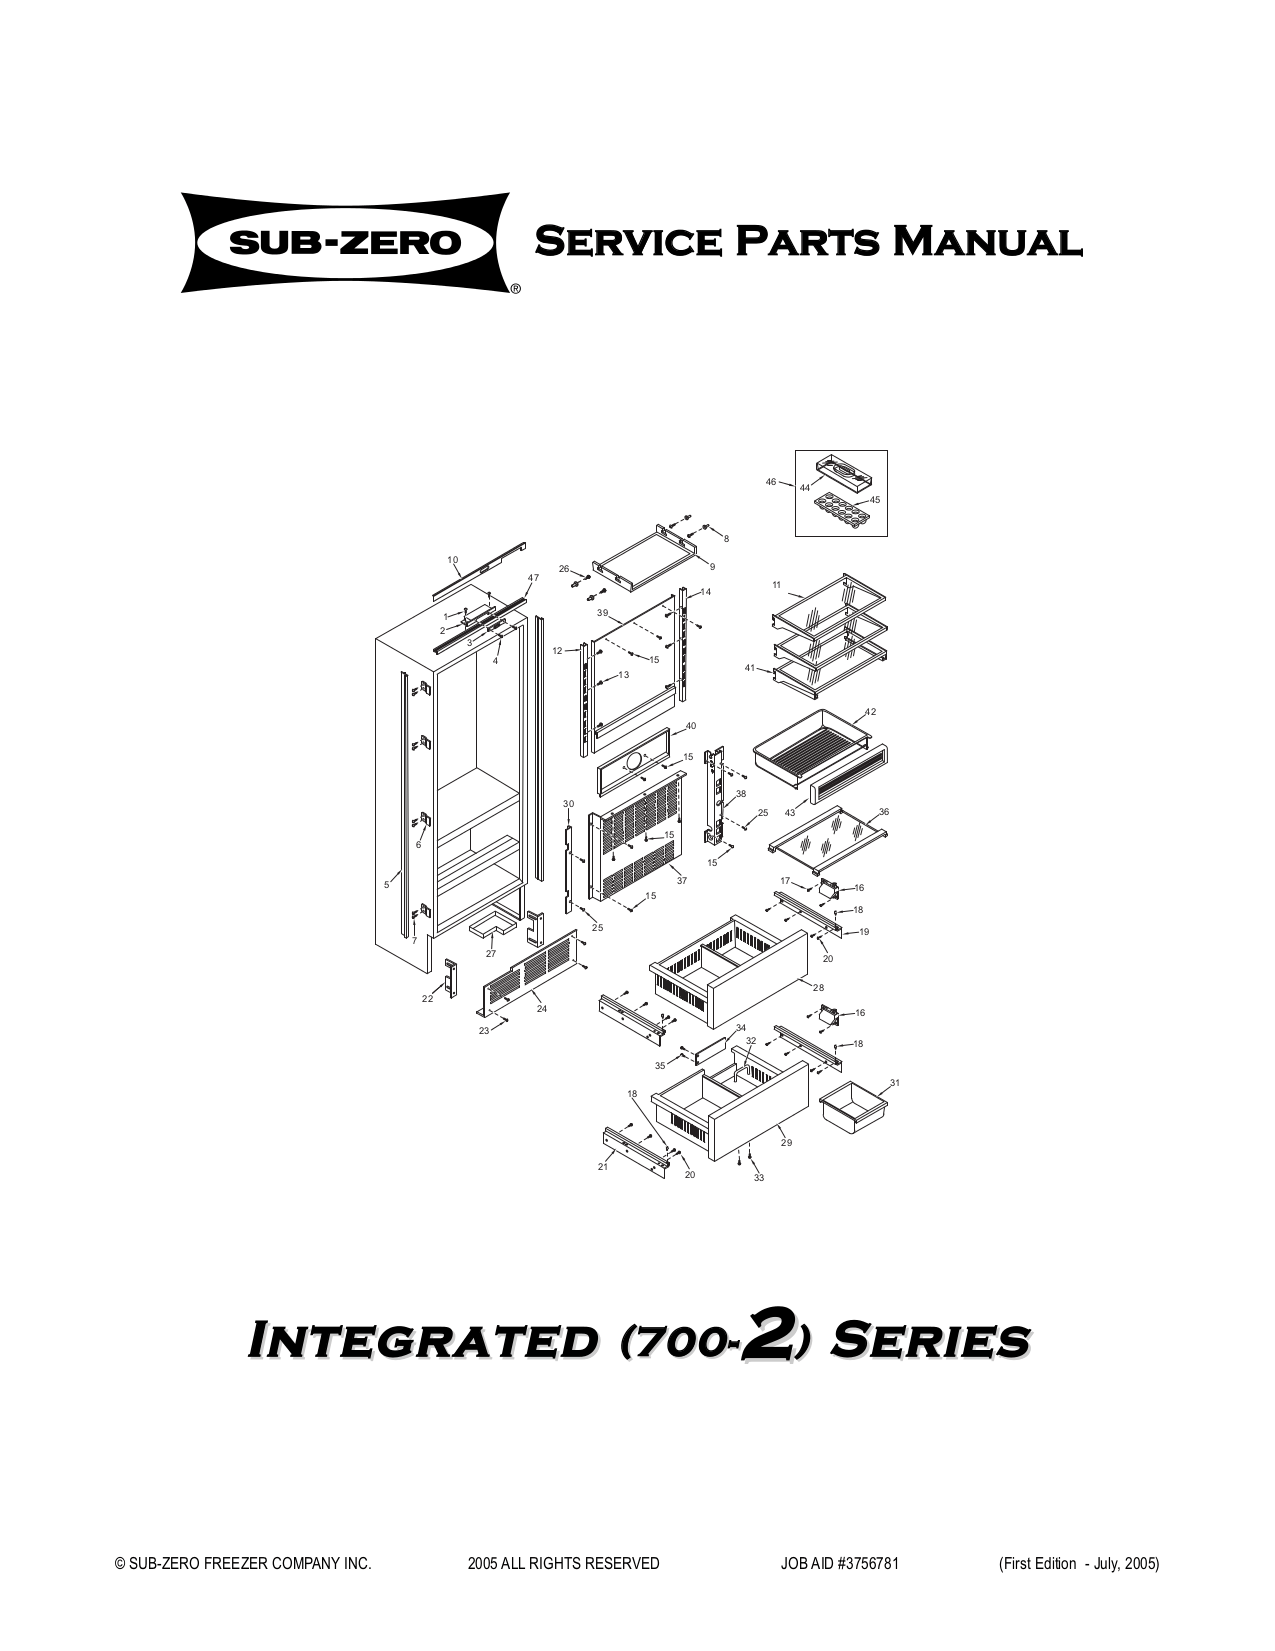 Download free pdf for Wolf Sub-Zero 700TF Refrigerator manual